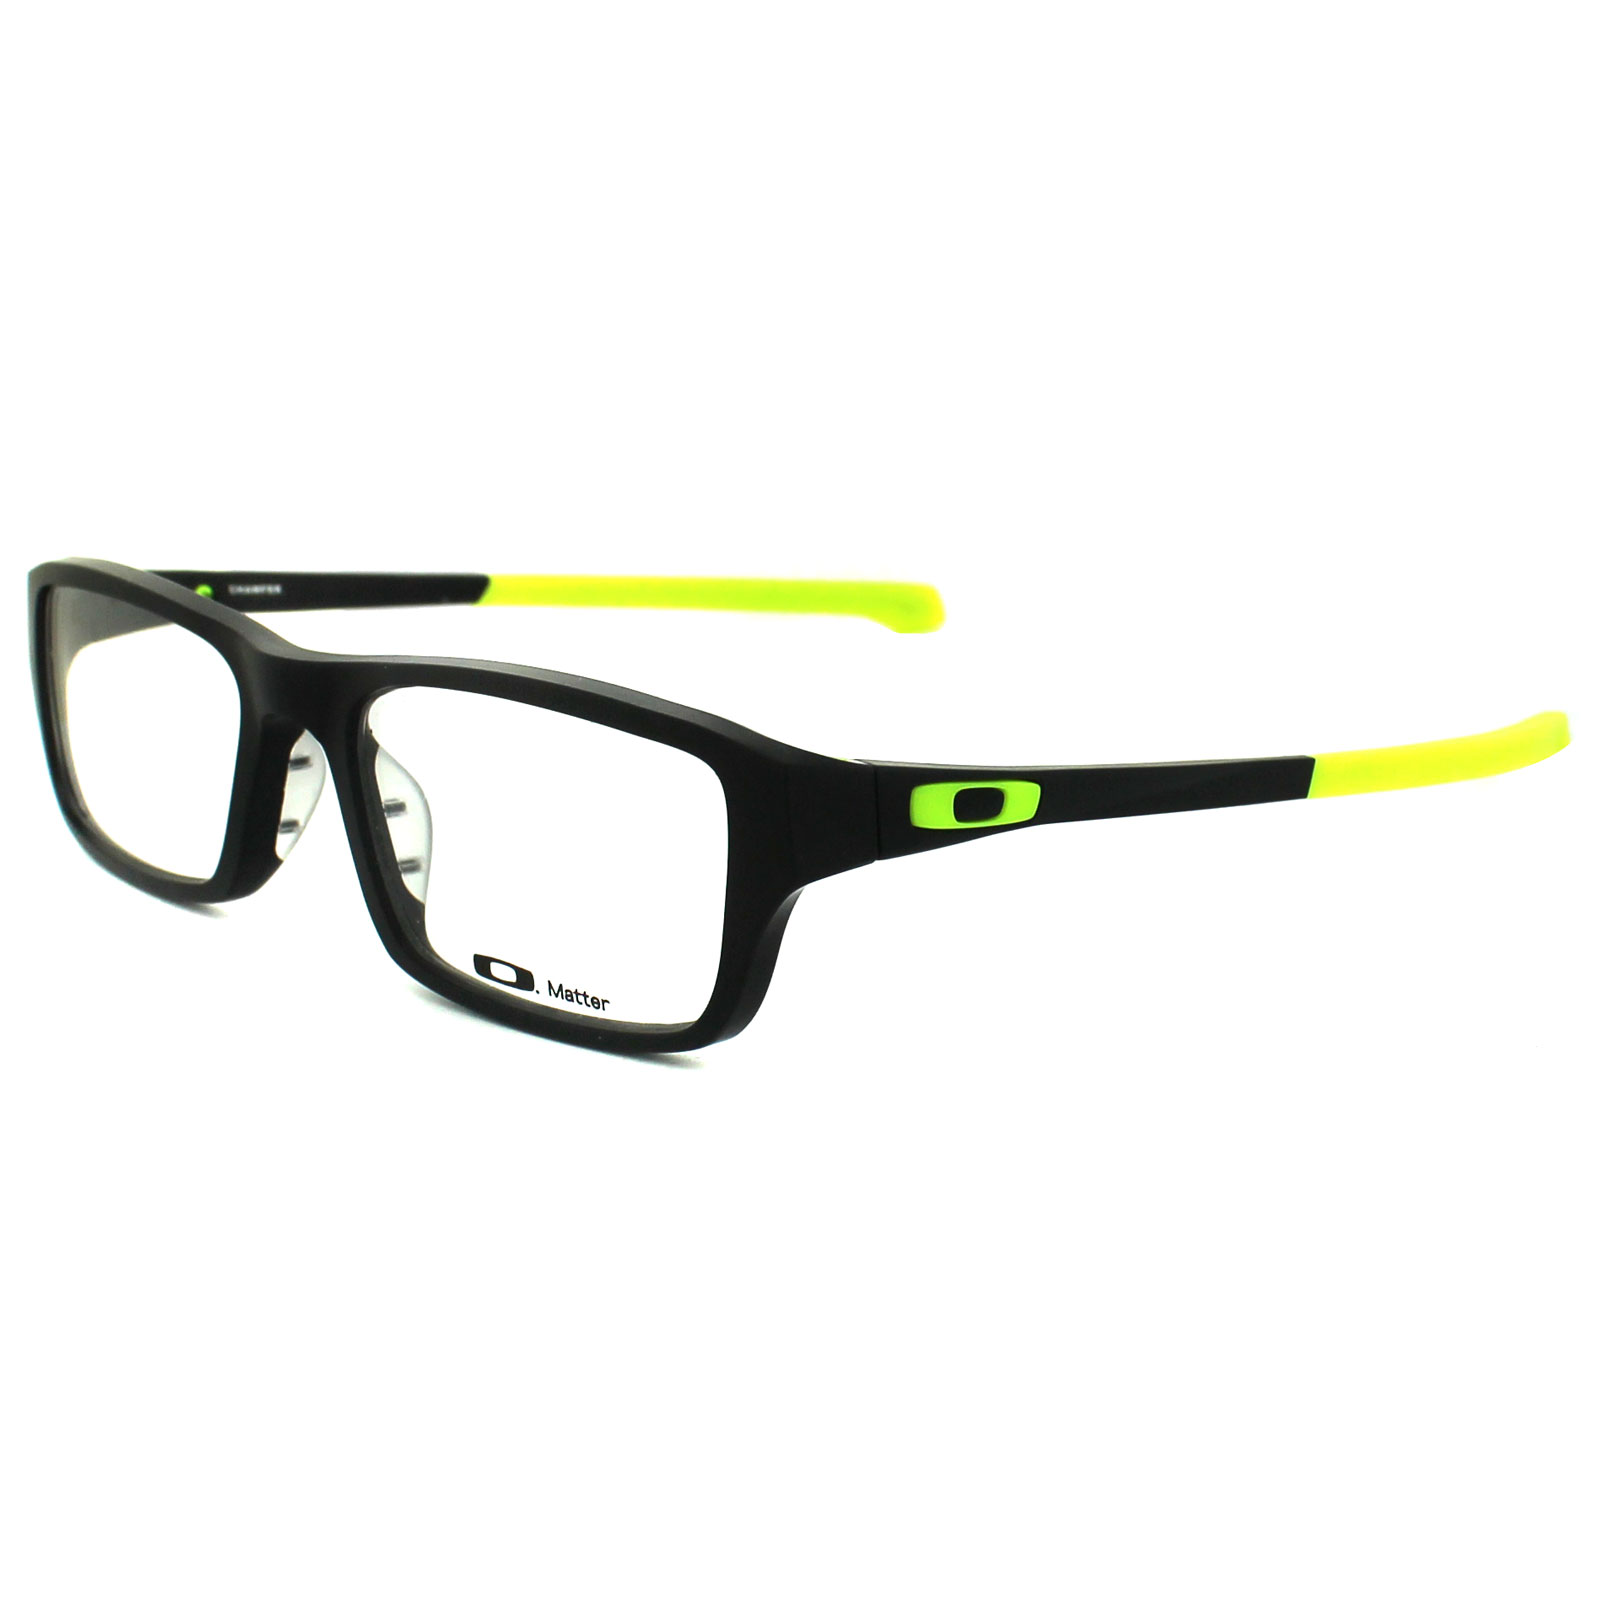 Eyeglass Frame Oakley : Oakley Eyeglass Frames Ebay marketing-yourself.co.uk